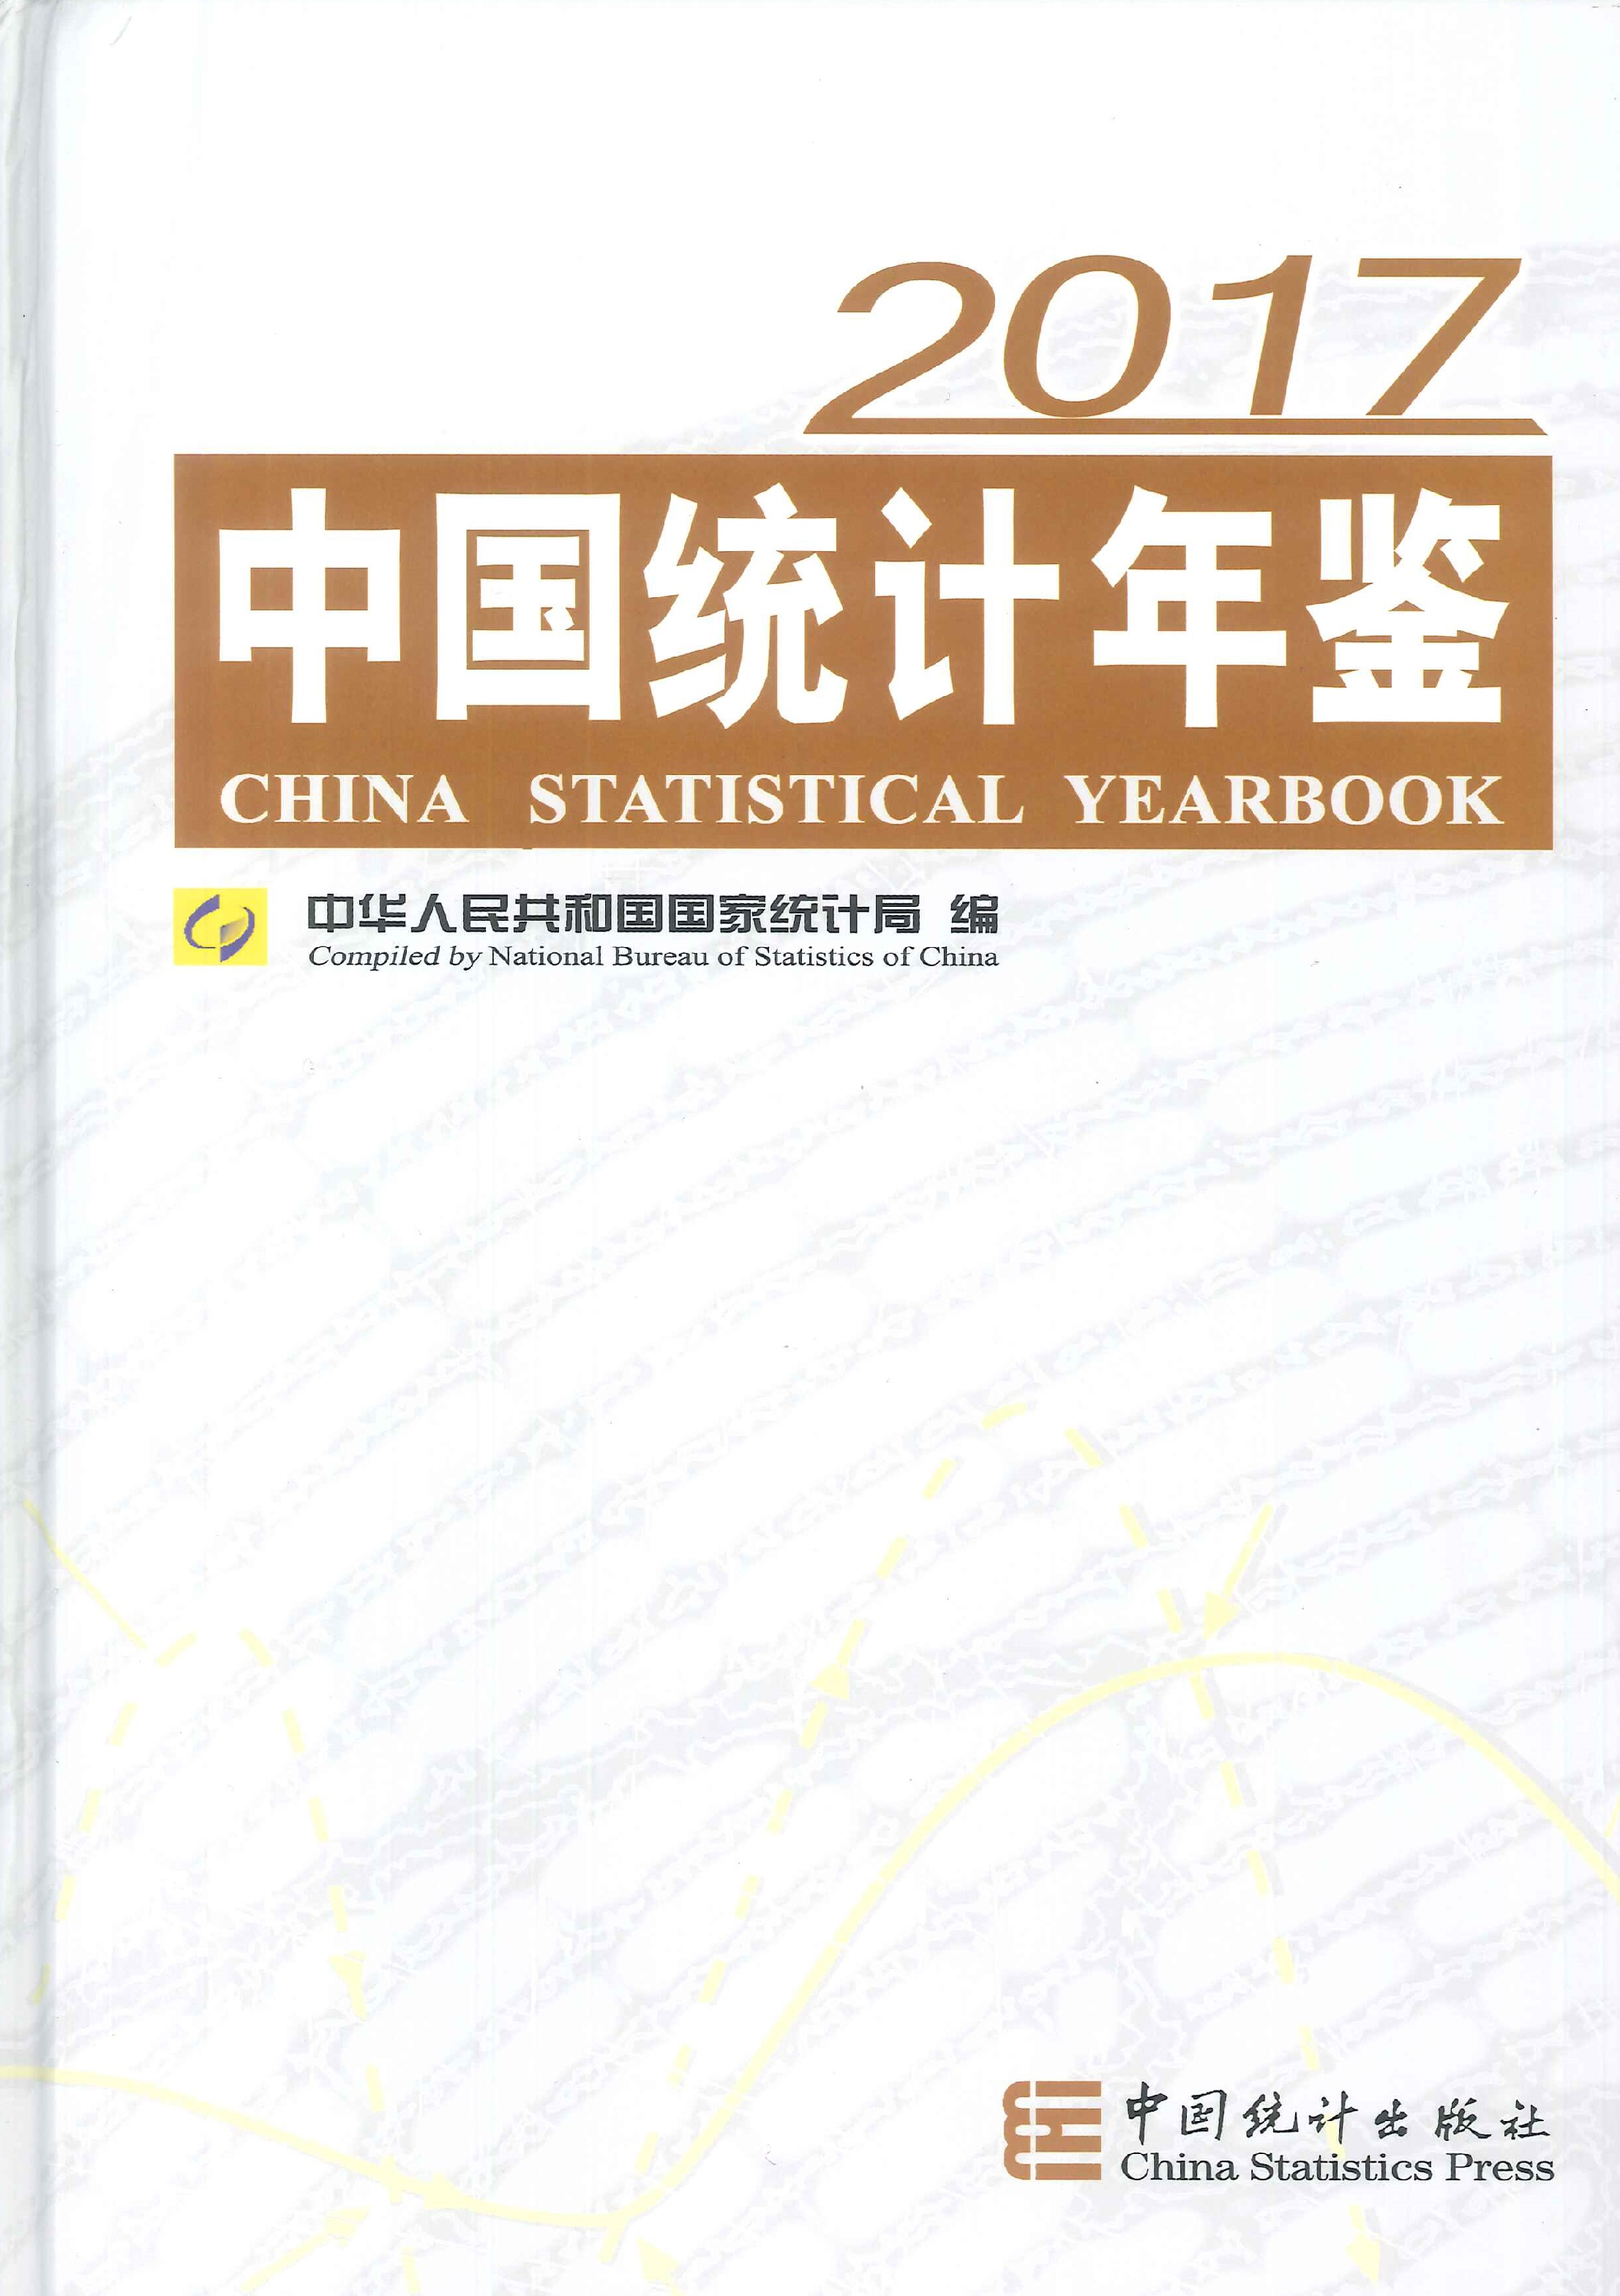 中国统计年鉴=Statistical yearbook of China